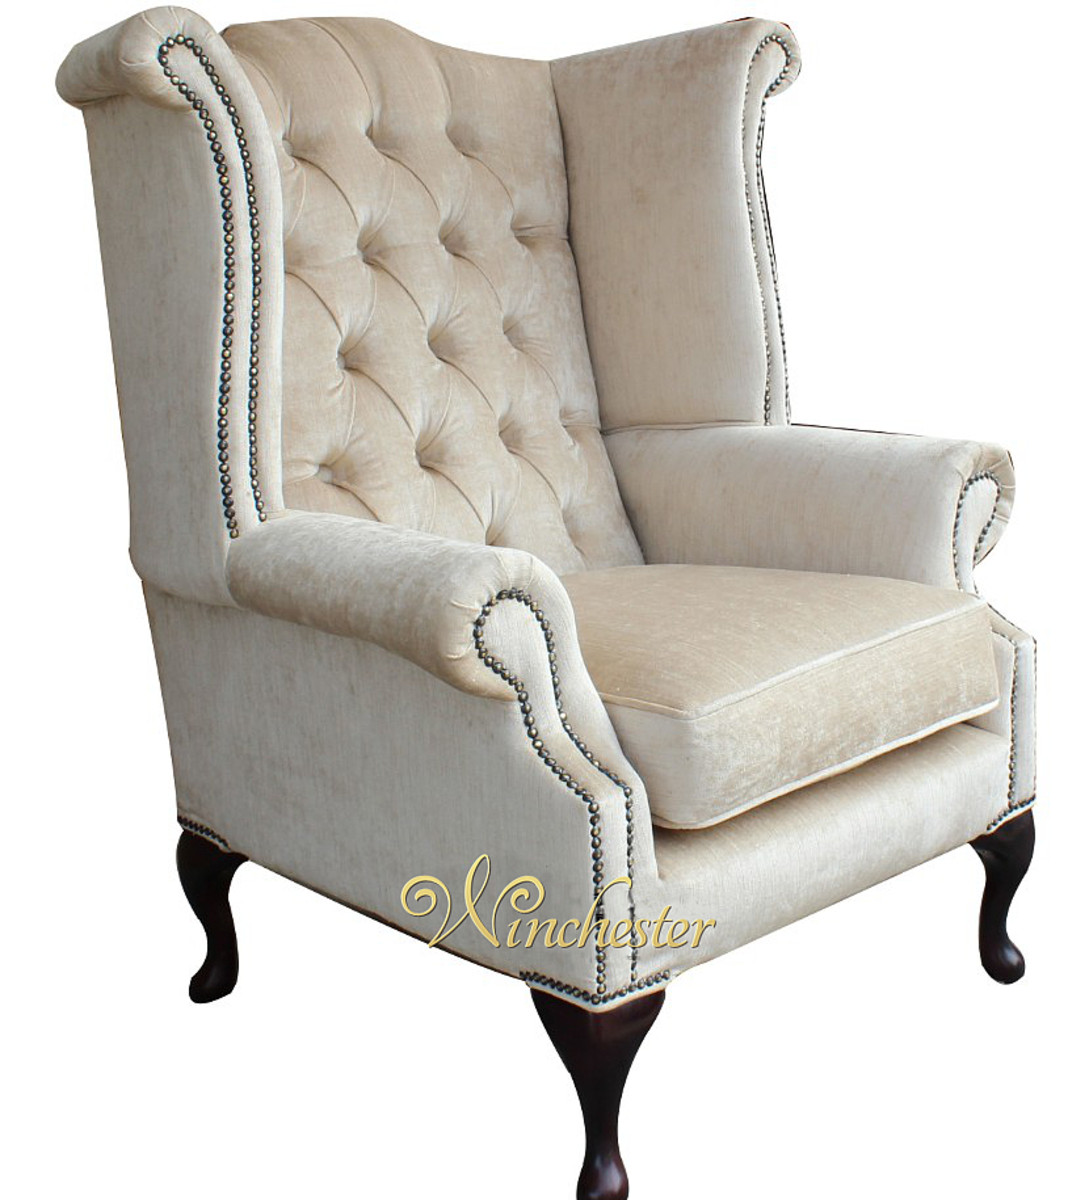 high back wing chairs outdoor lounge walmart chesterfield velvet queen anne chair perla